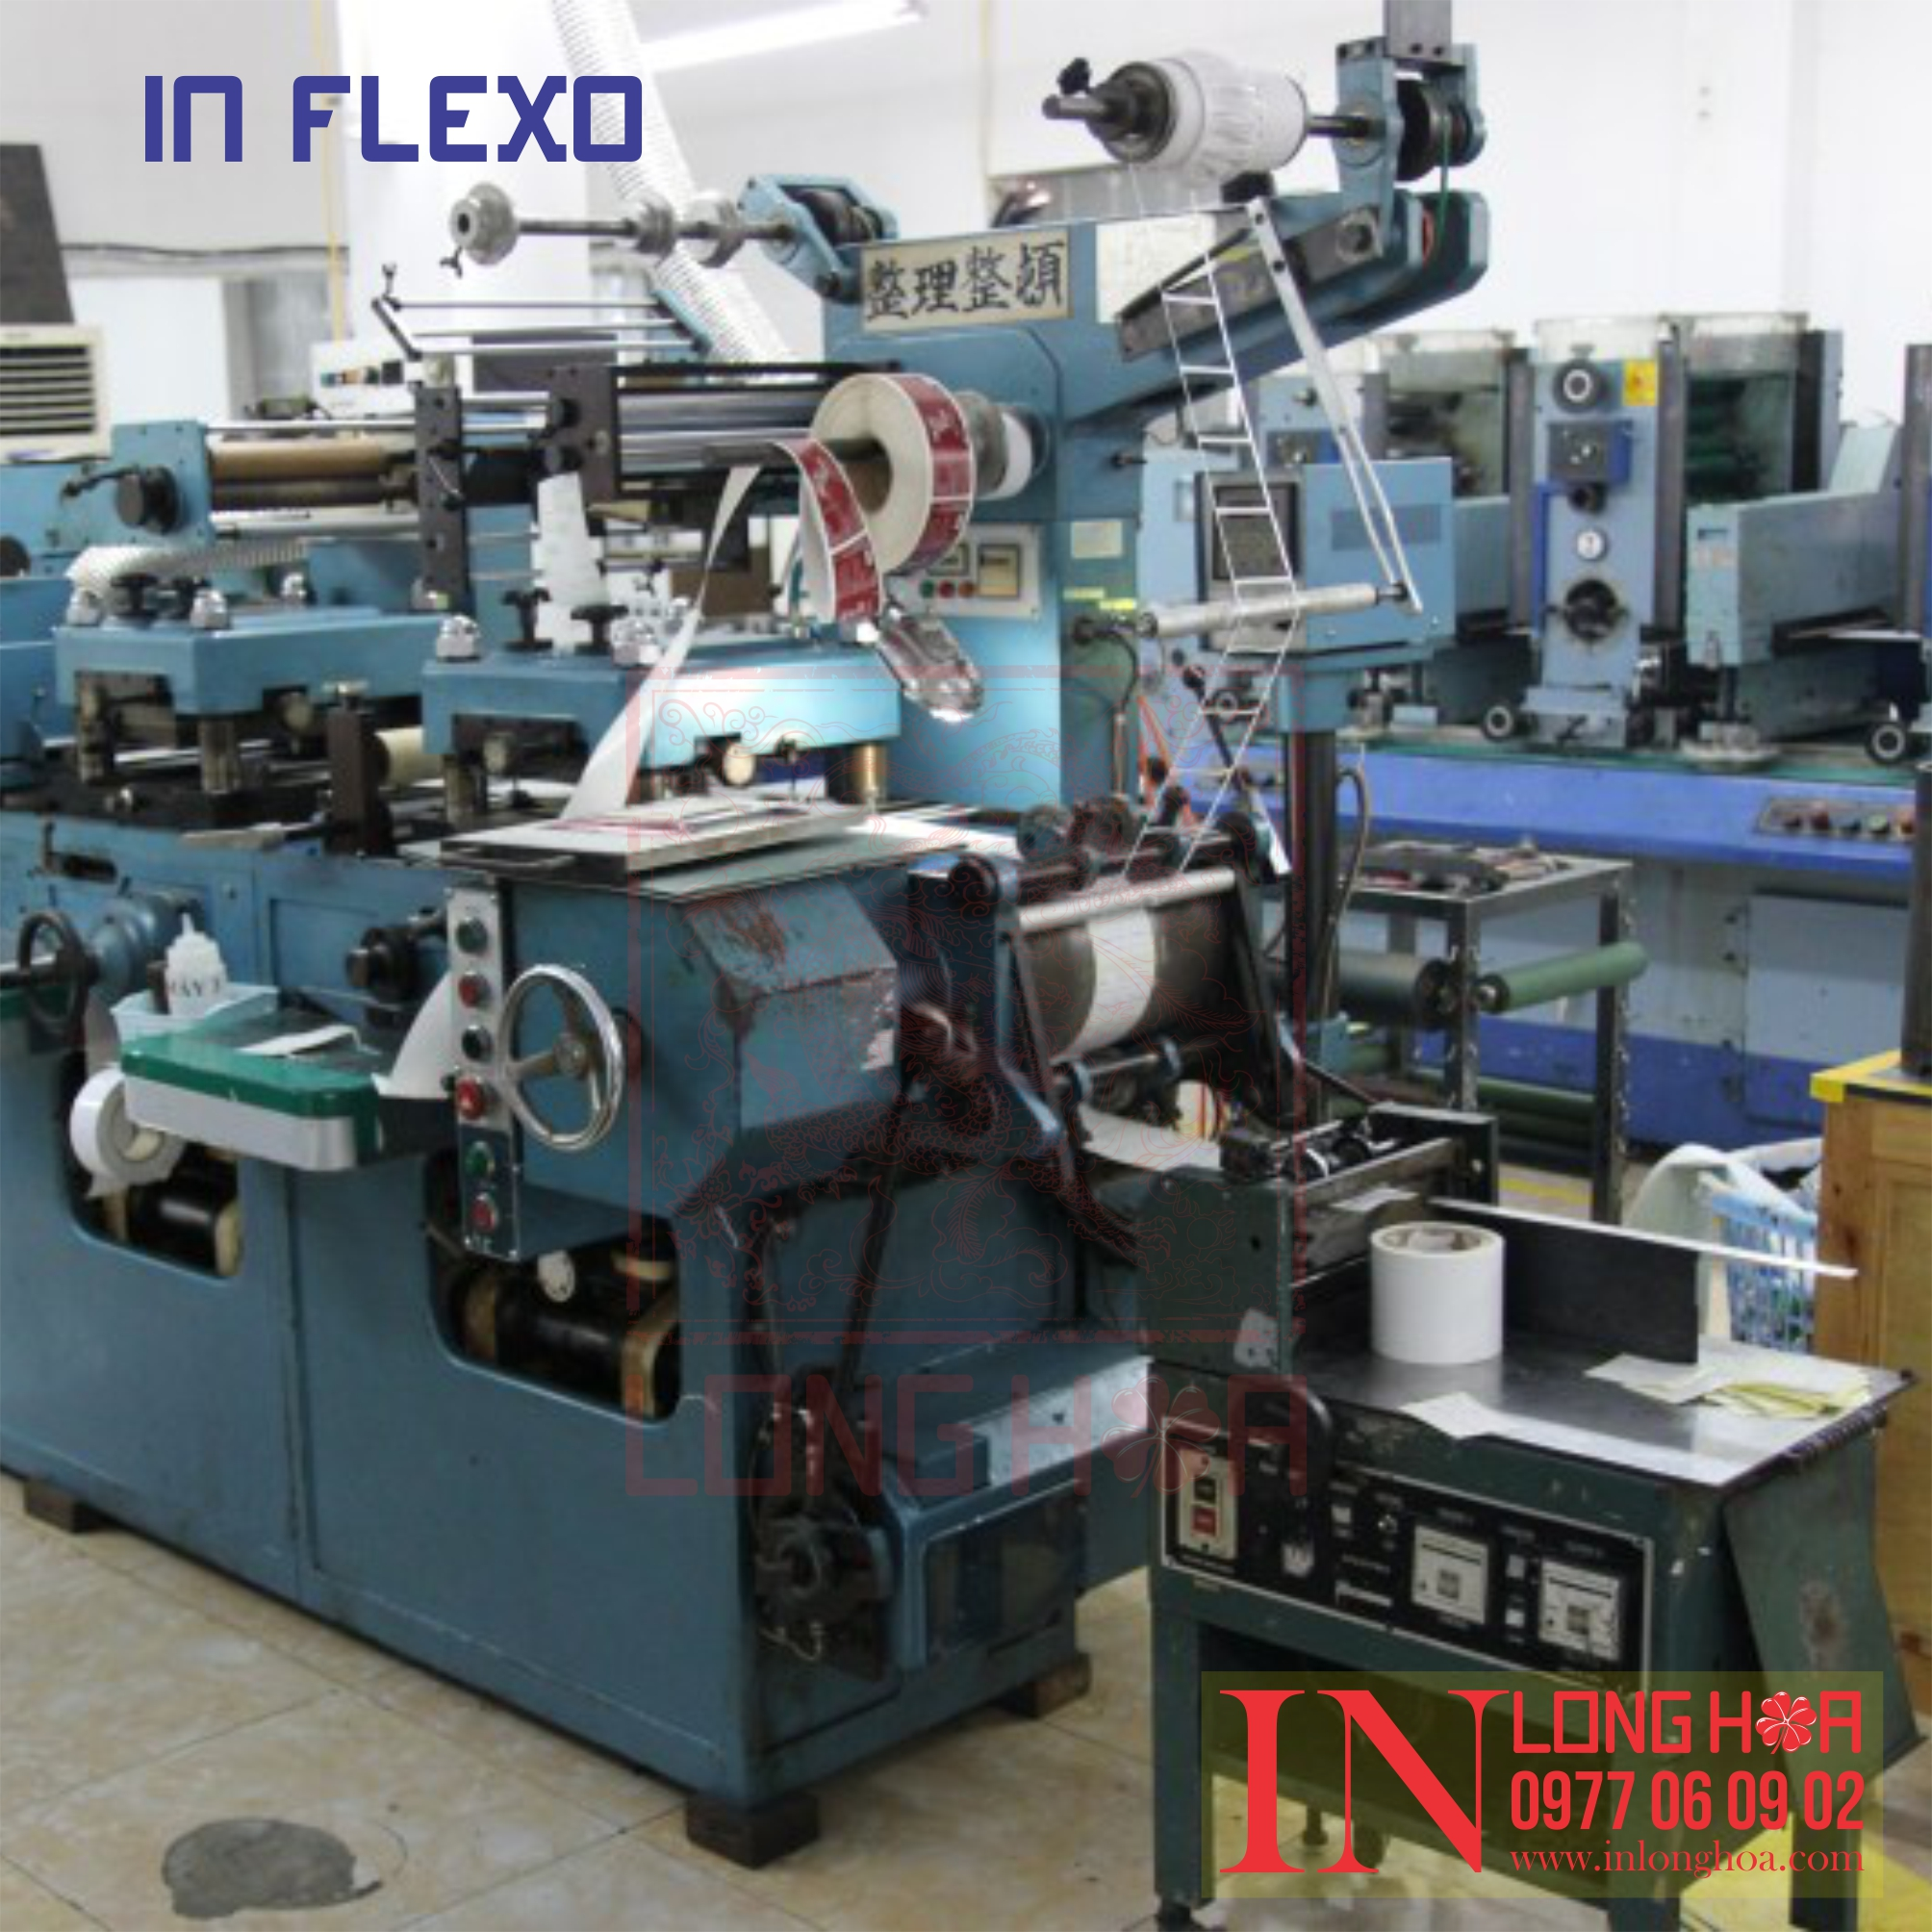 in gi re flexo, flexo in nhn quan o, in flexo gi re